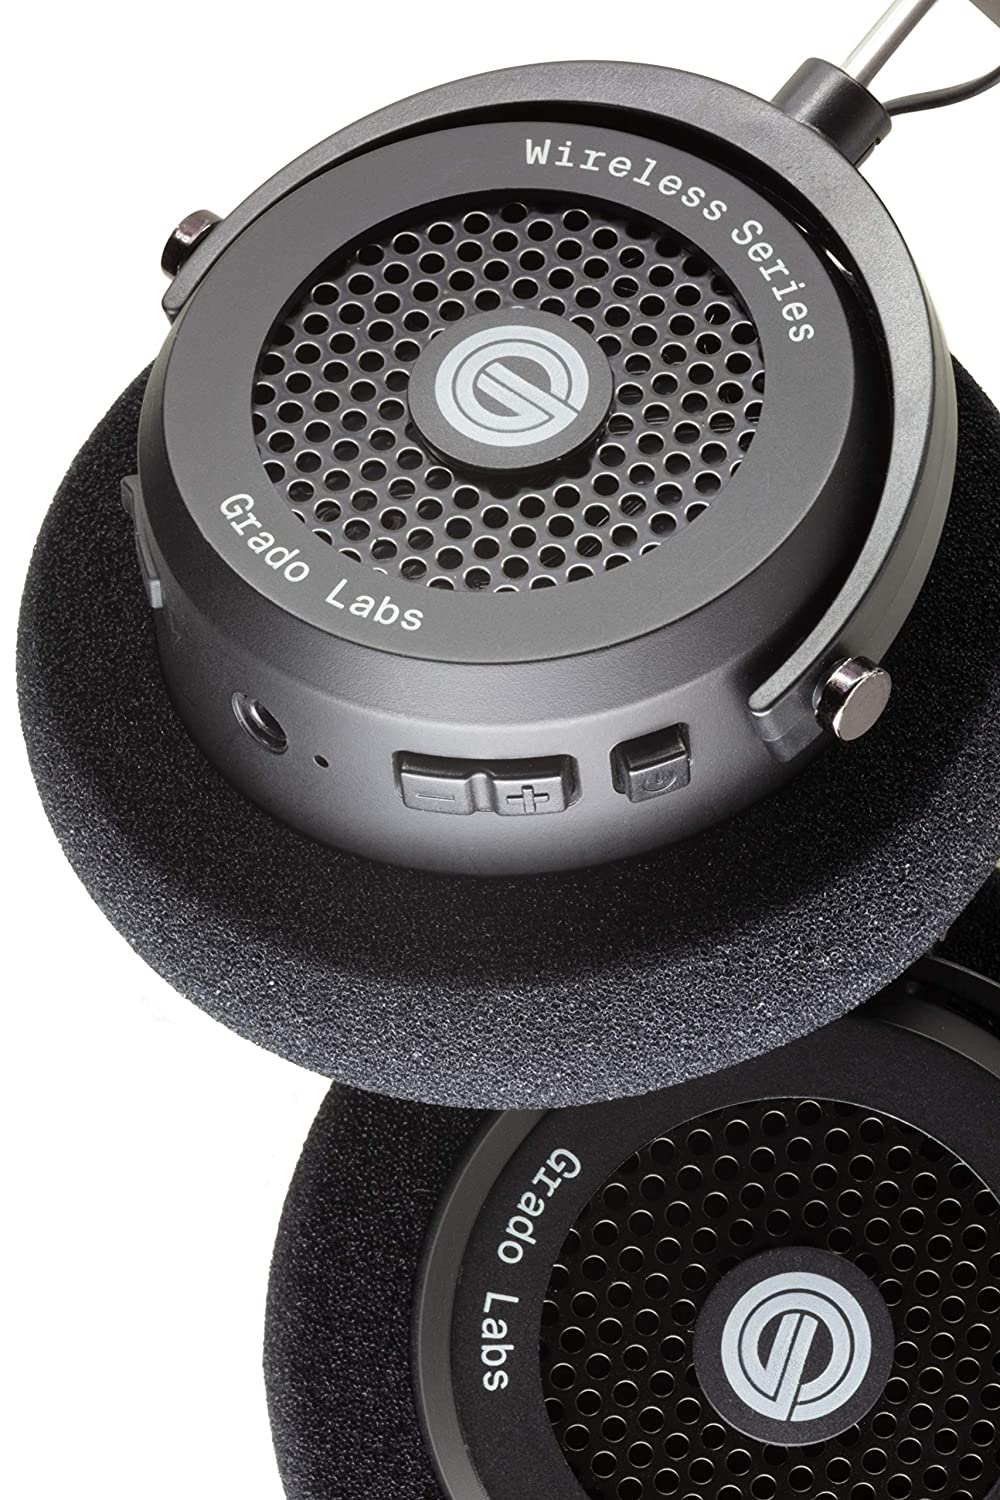 aab225013b3 Amazon.com: GRADO GW100 Wireless Bluetooth Headphones - Open Back and On  Ear: Home Audio & Theater